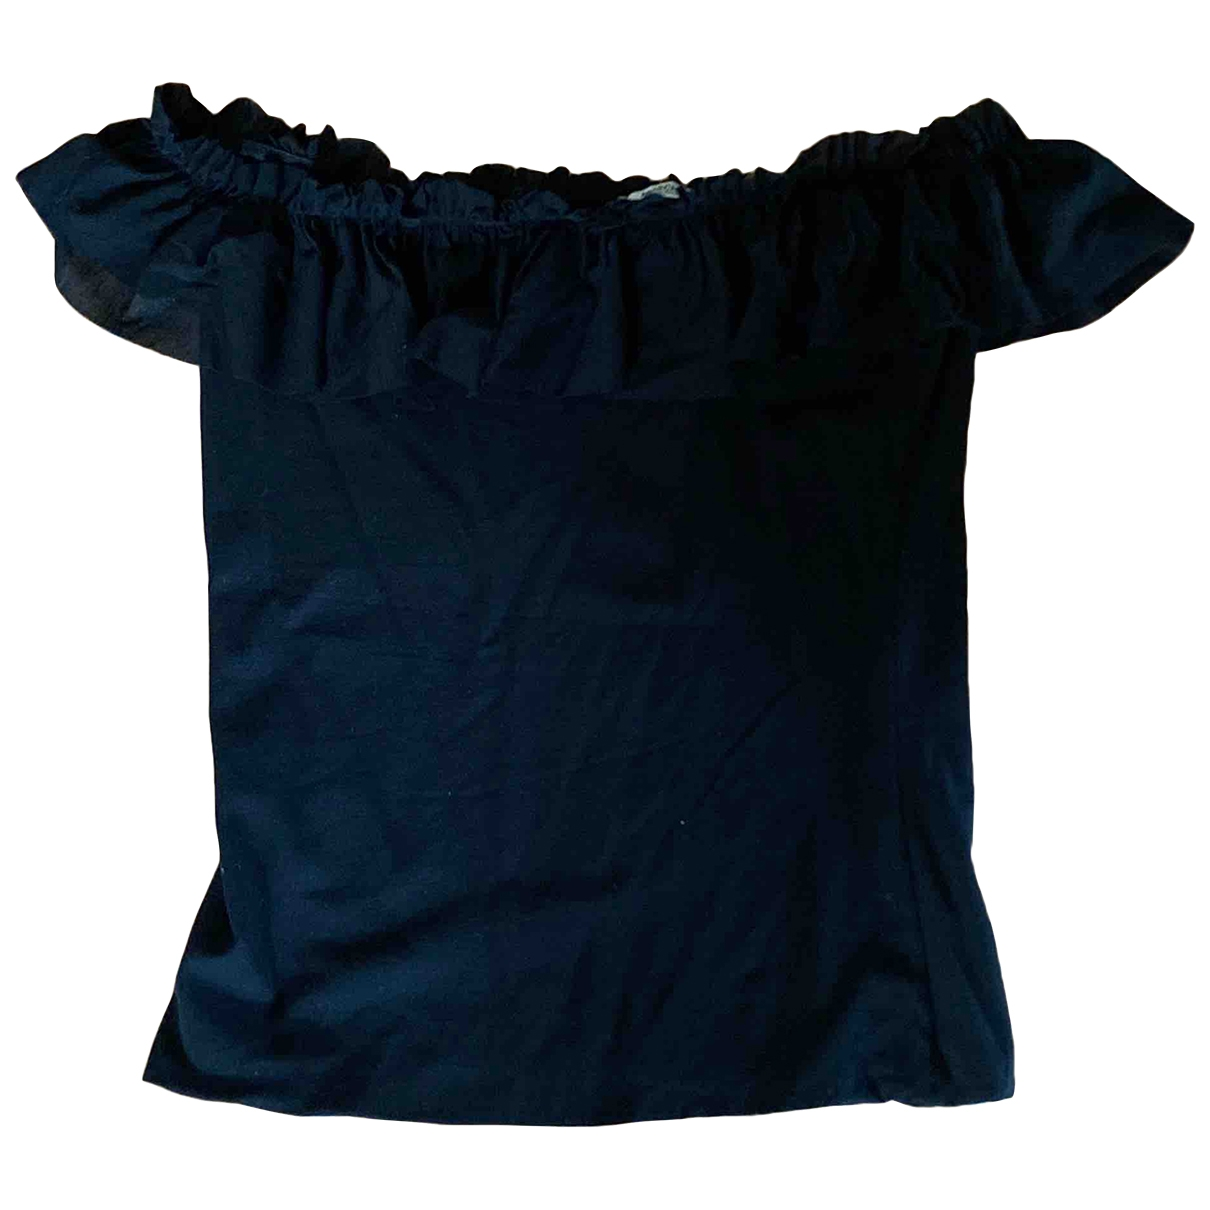 Moschino \N Black Cotton  top for Women 44 IT